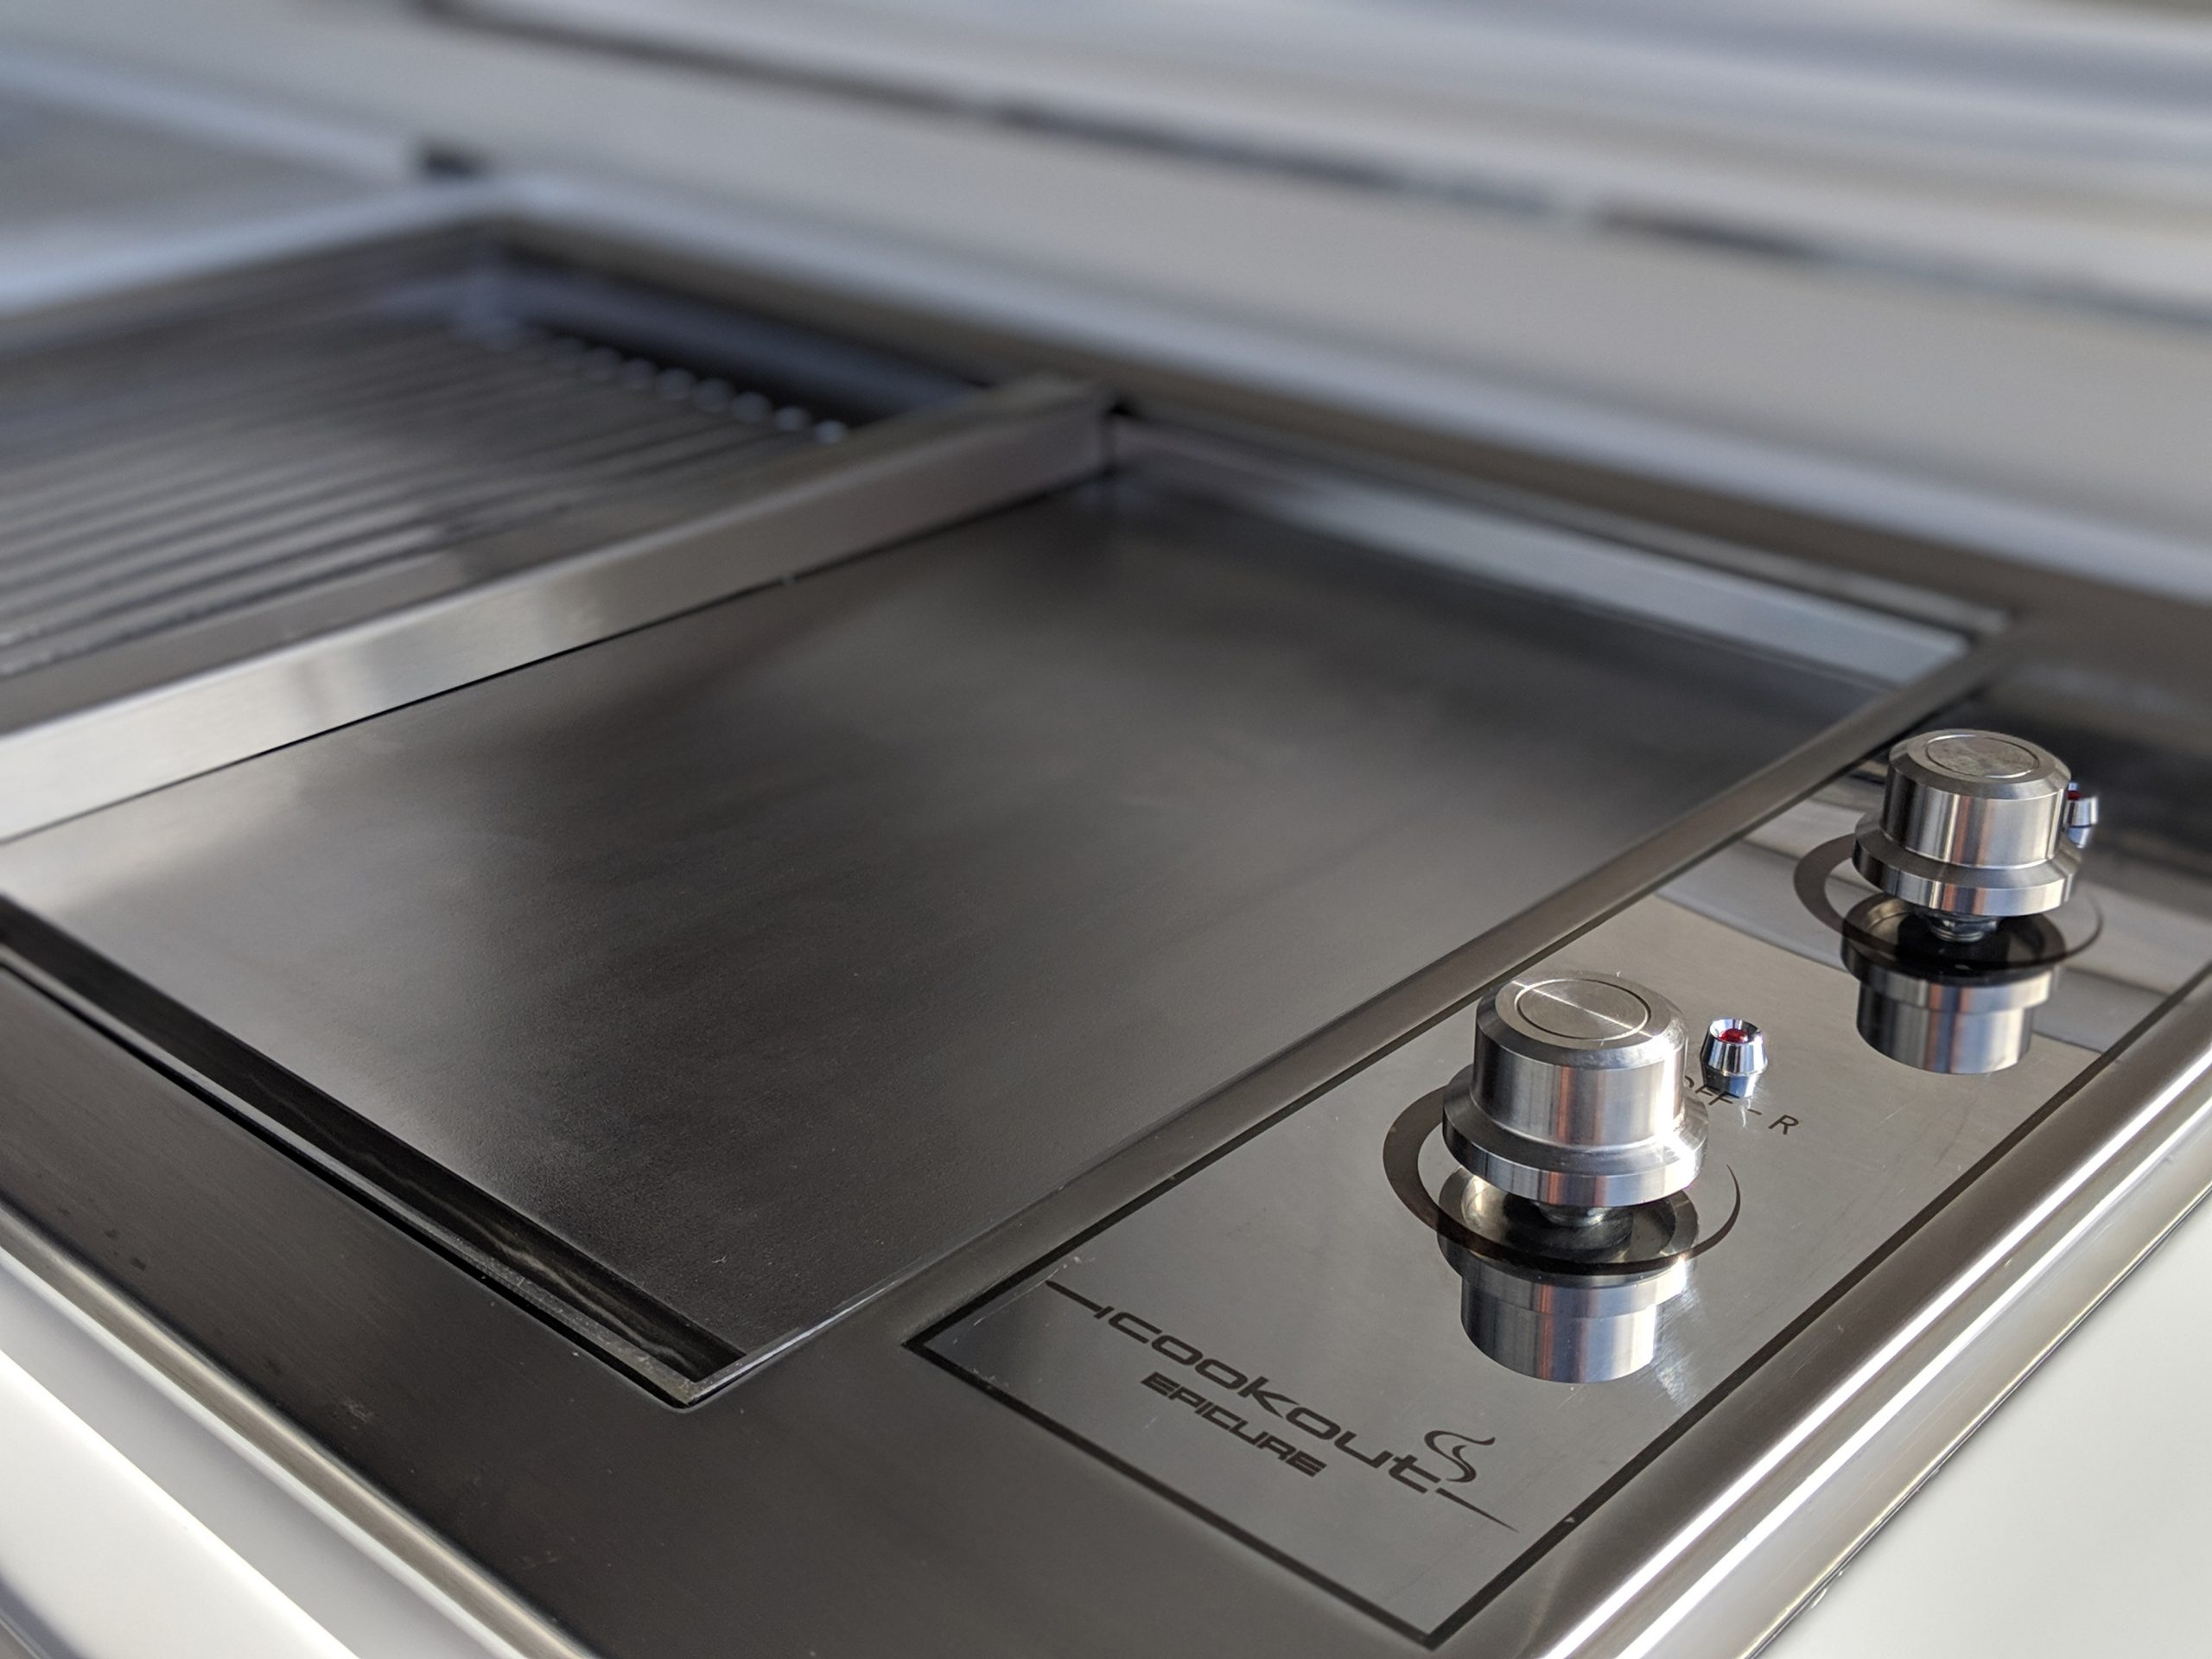 Best built-in 316 stainless BBQ Australia